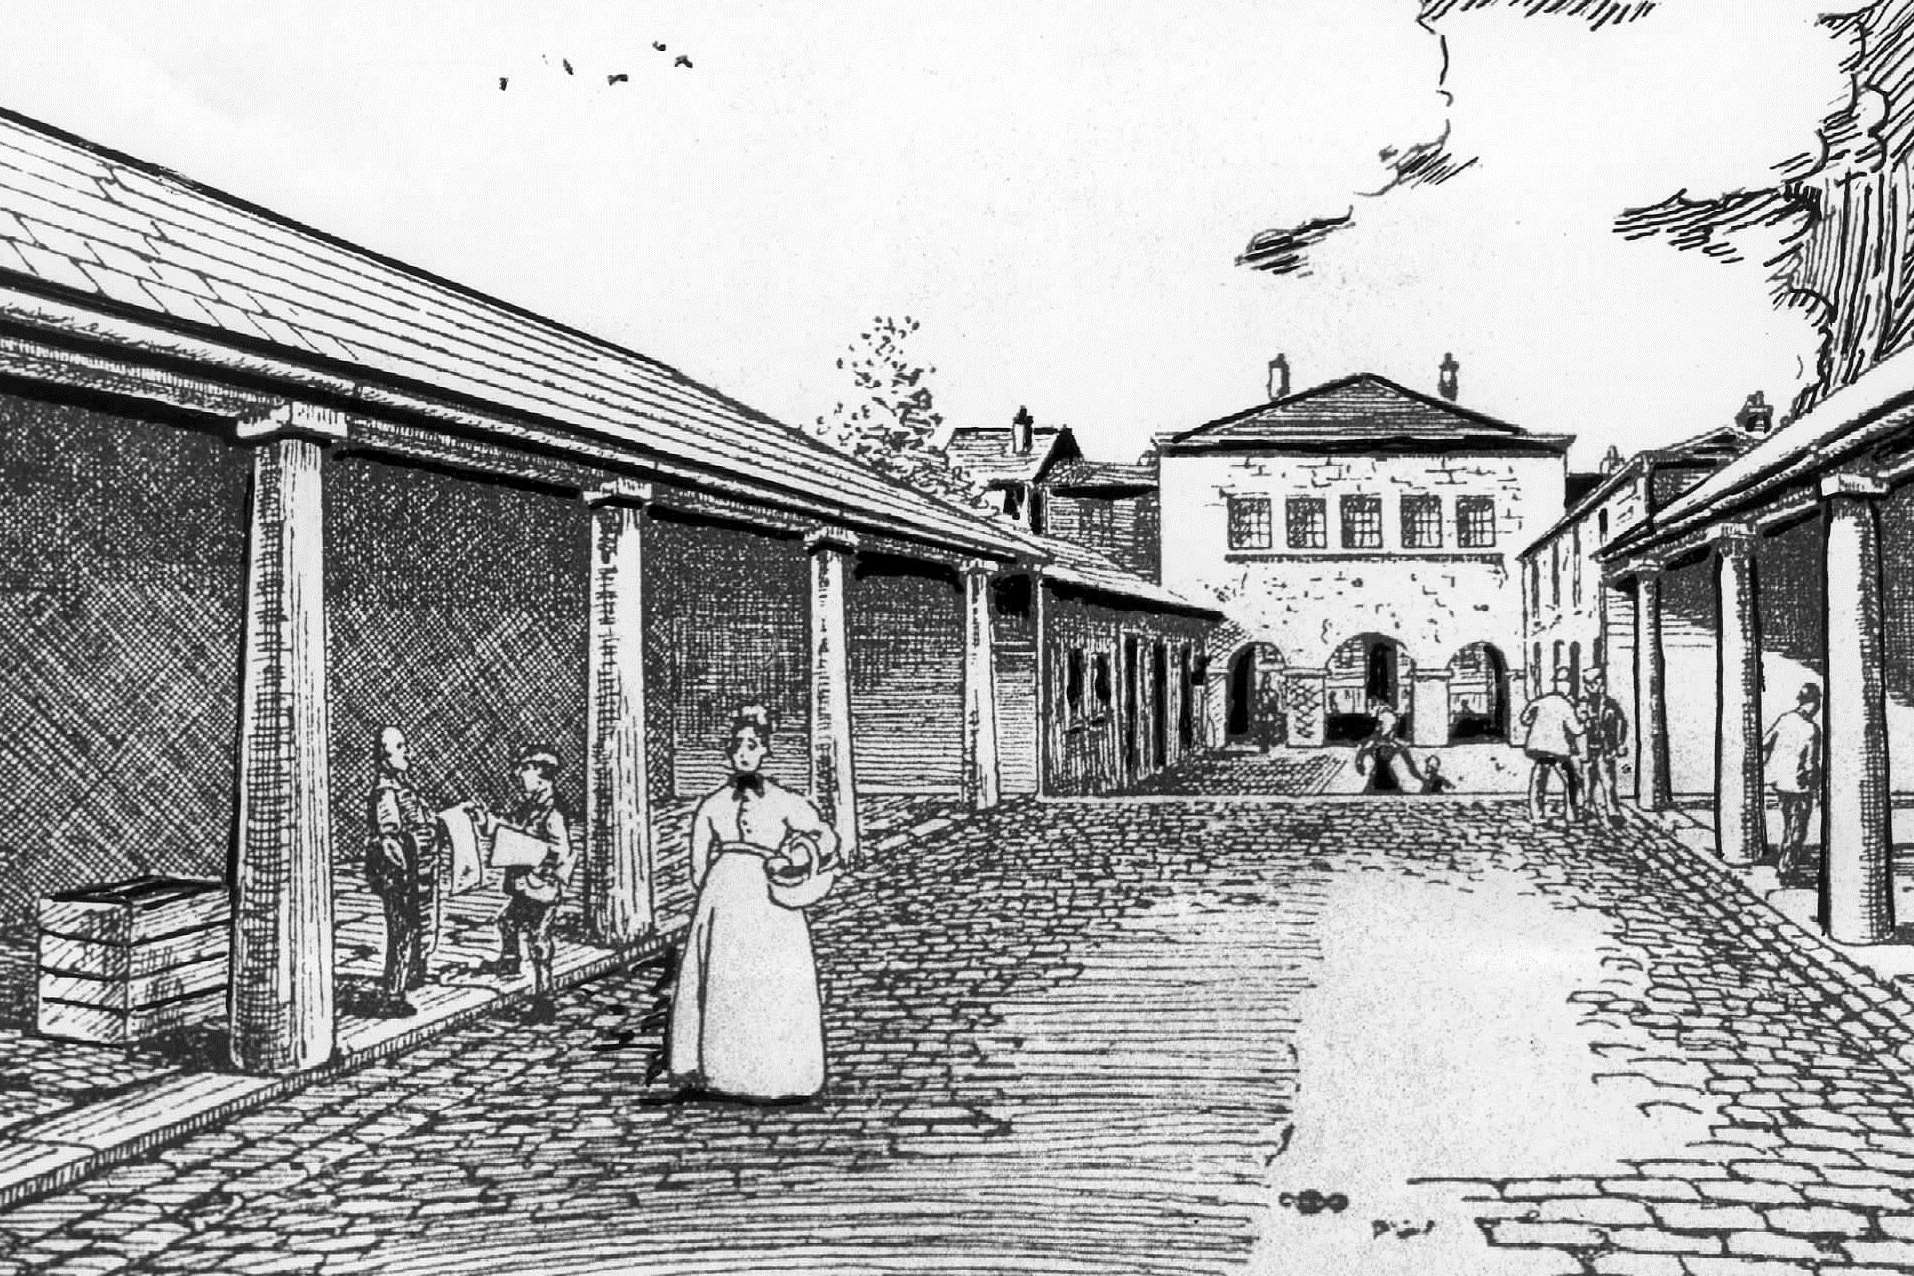 The first Gravesend market build in 1898.